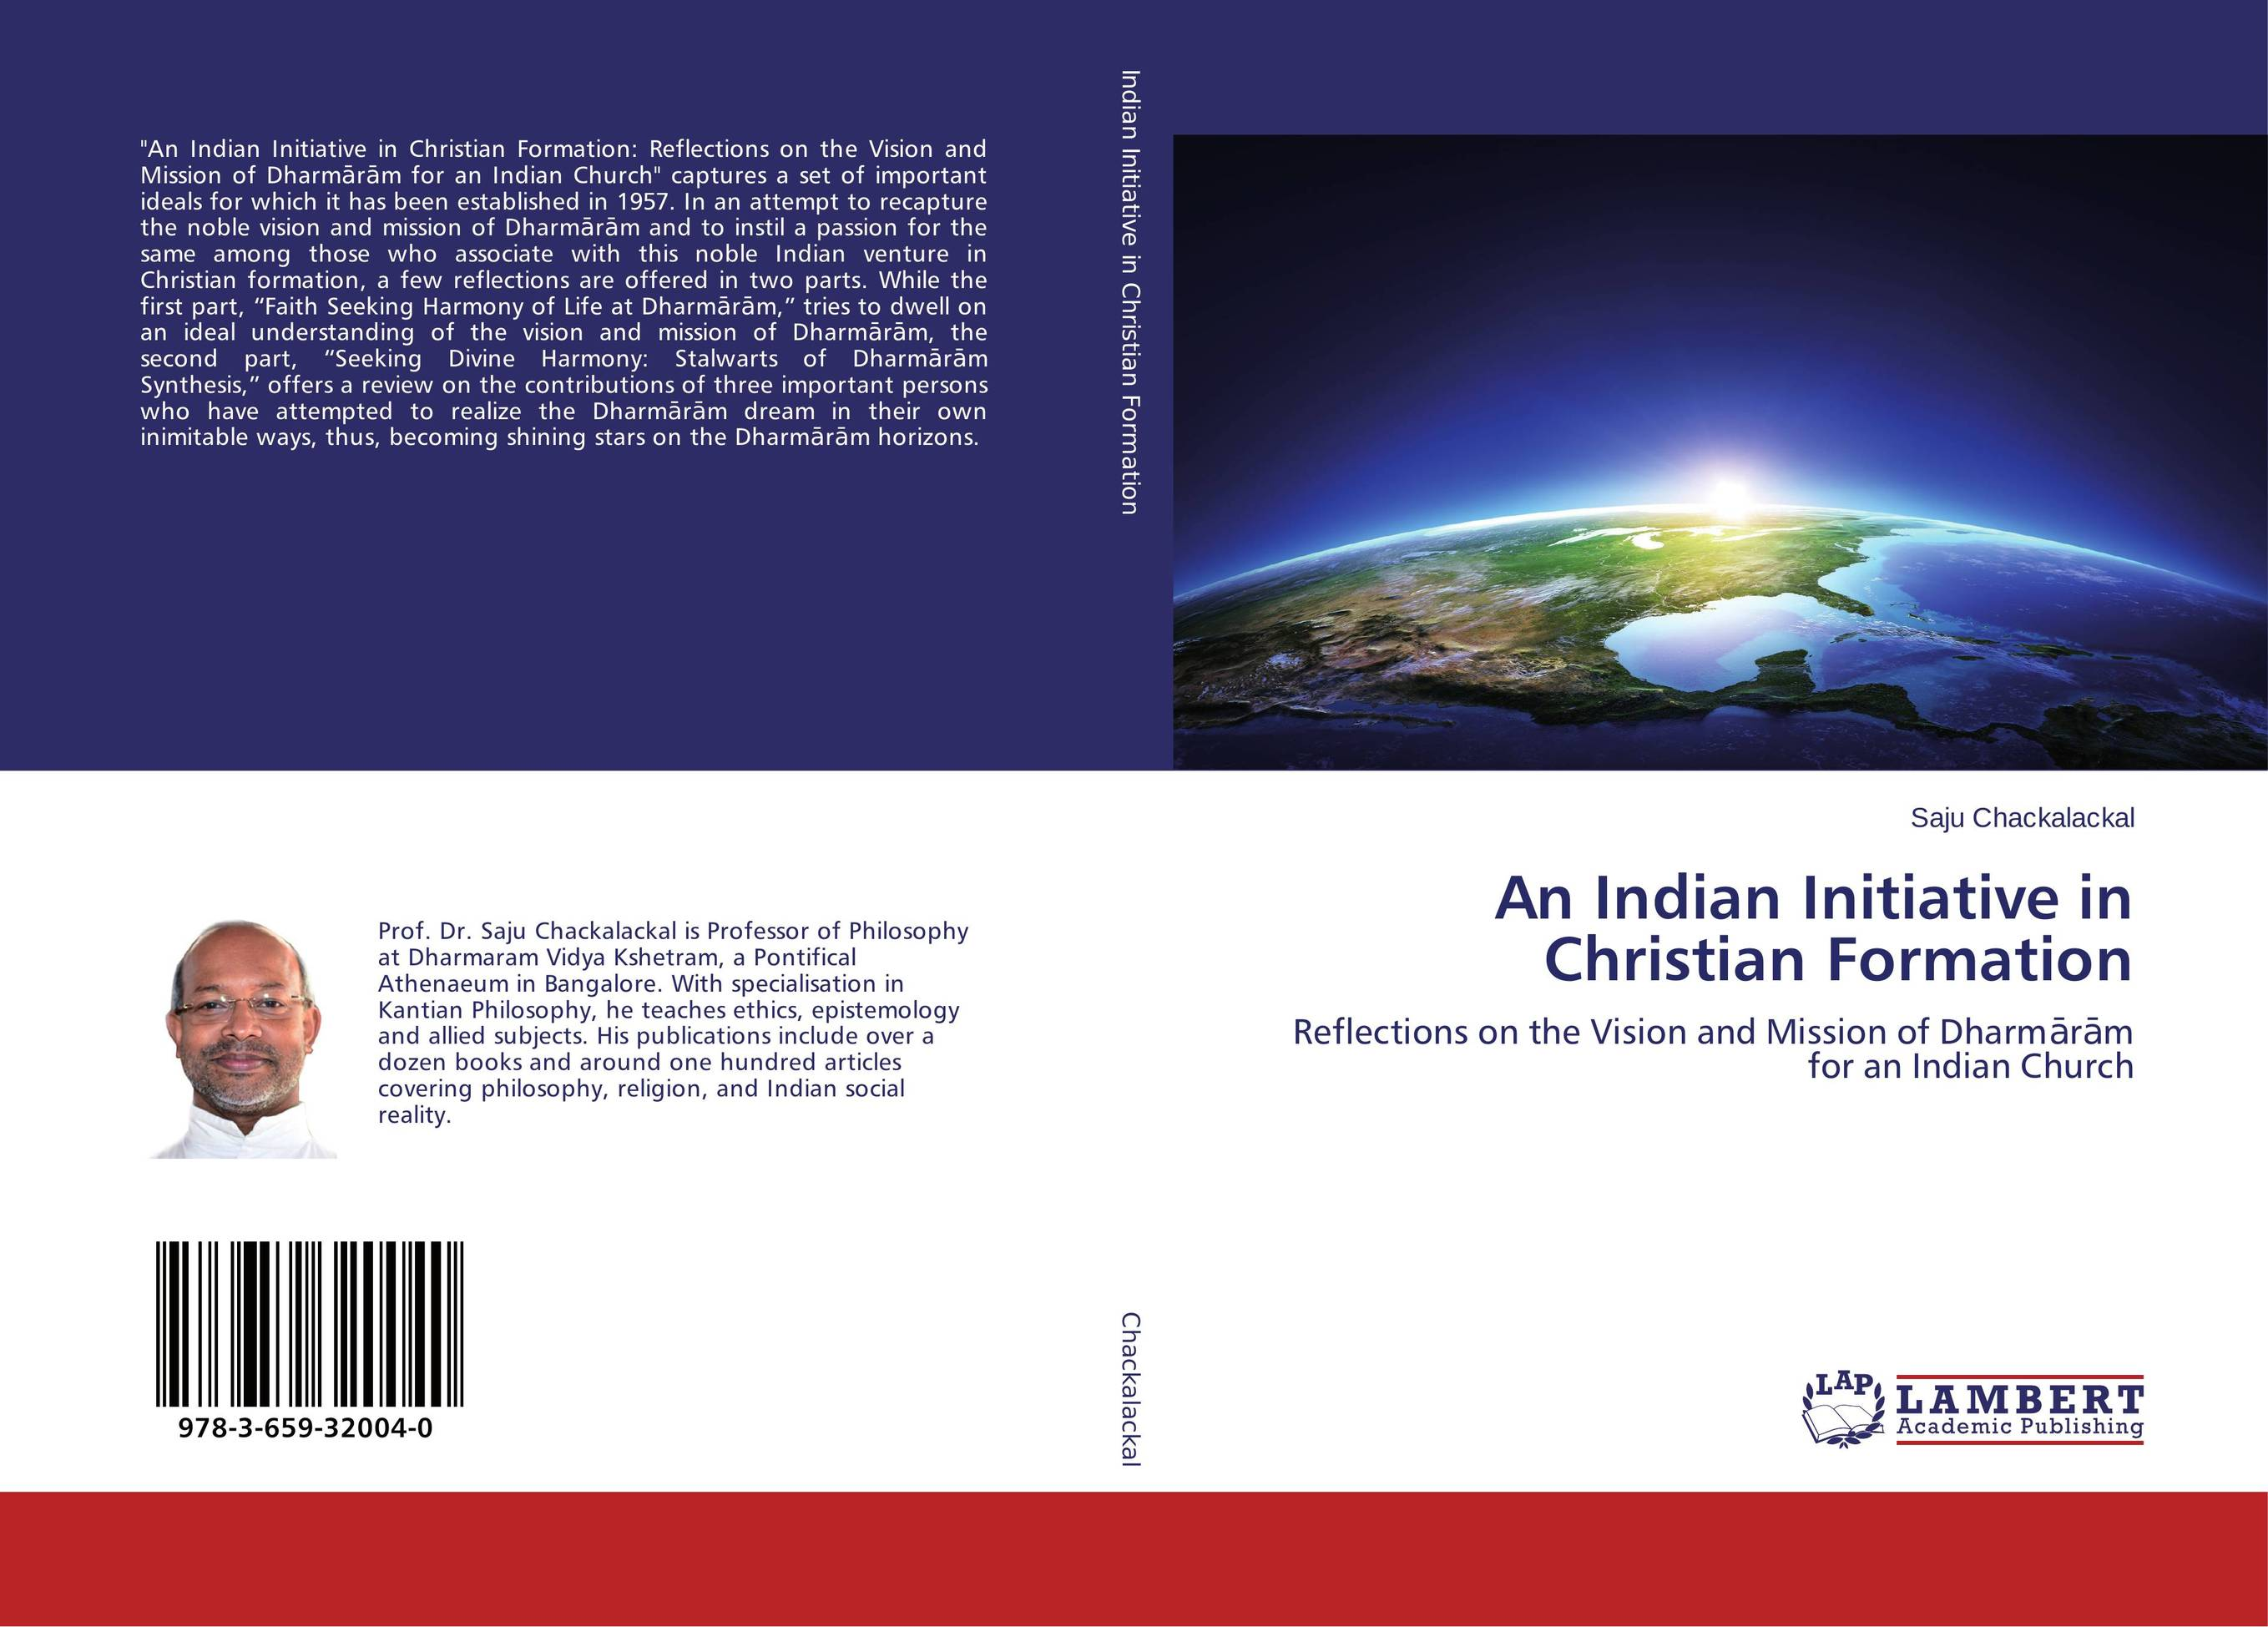 An Indian Initiative in Christian Formation overview of carcinoma breast an indian prespective